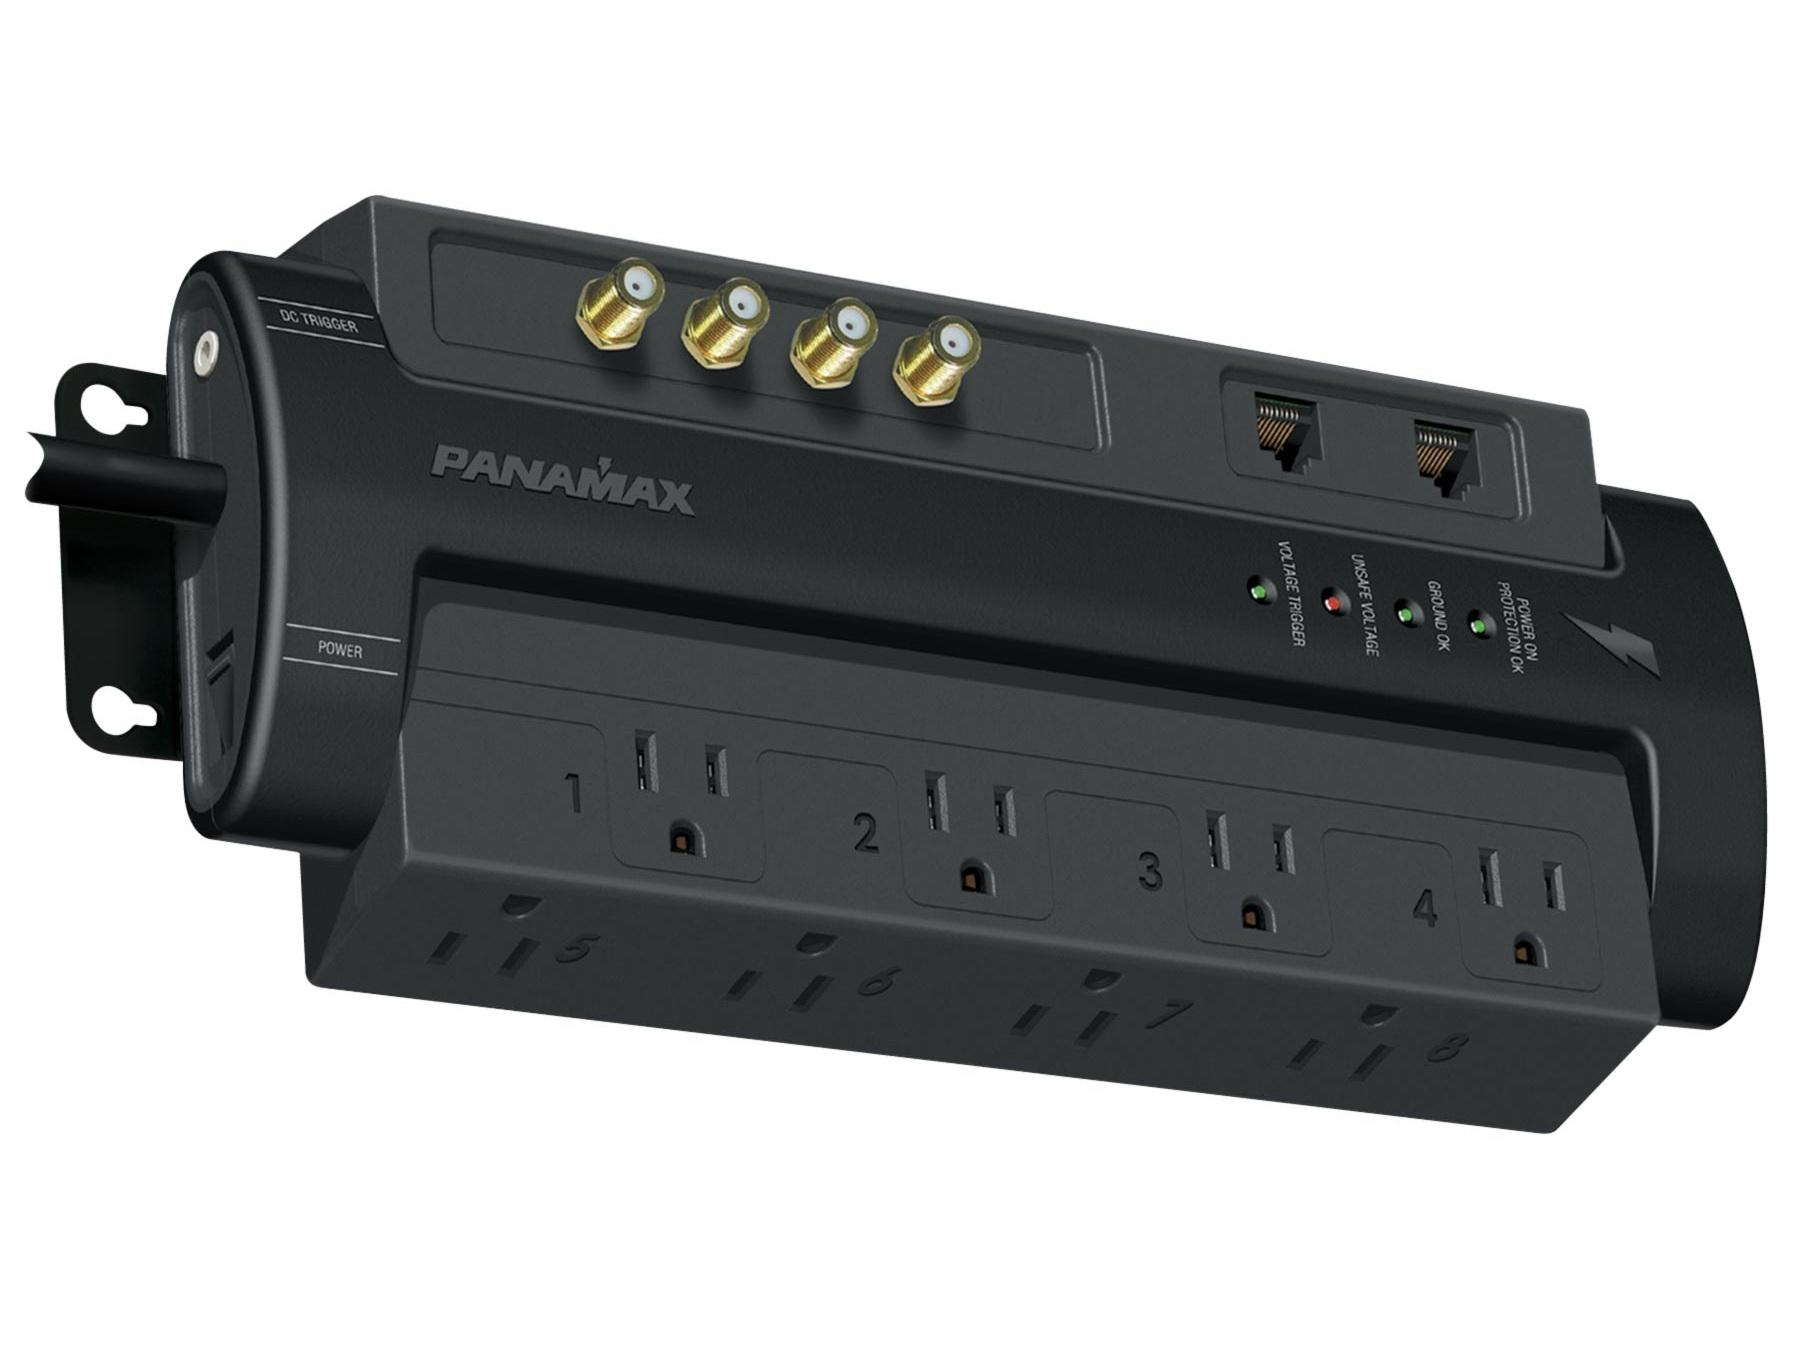 M8-AV-PRO Max 8 AV Pro - 8 AC Coax and Telephone Line Surge Protector by Panamax